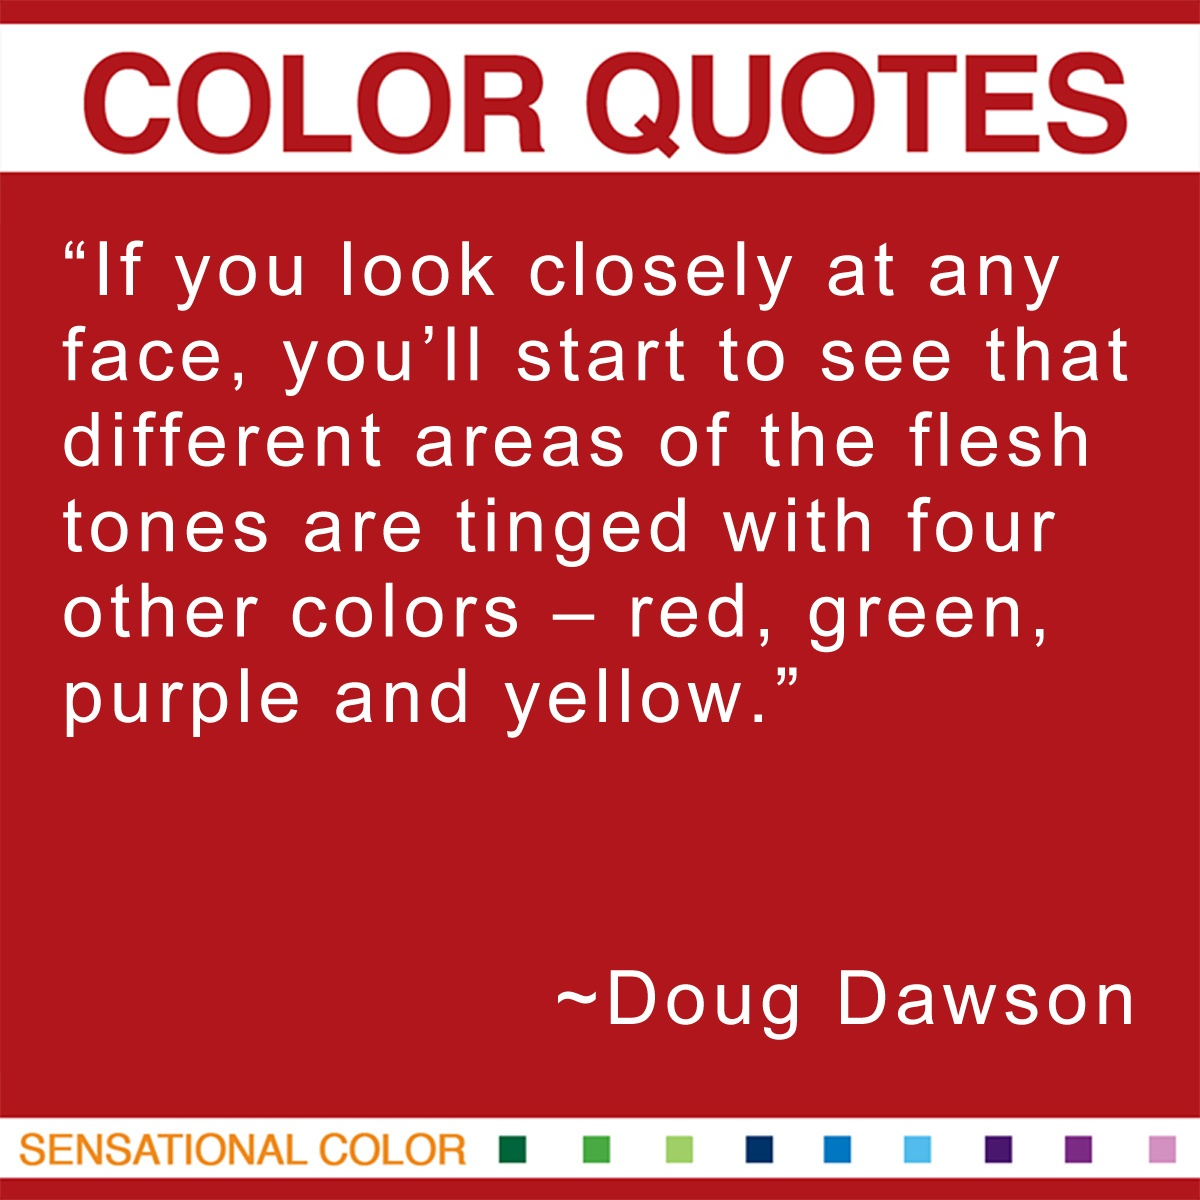 """If you look closely at any face, you'll start to see that different areas of the flesh tones are tinged with four other colors – red, green, purple and yellow."" - Doug Dawson"